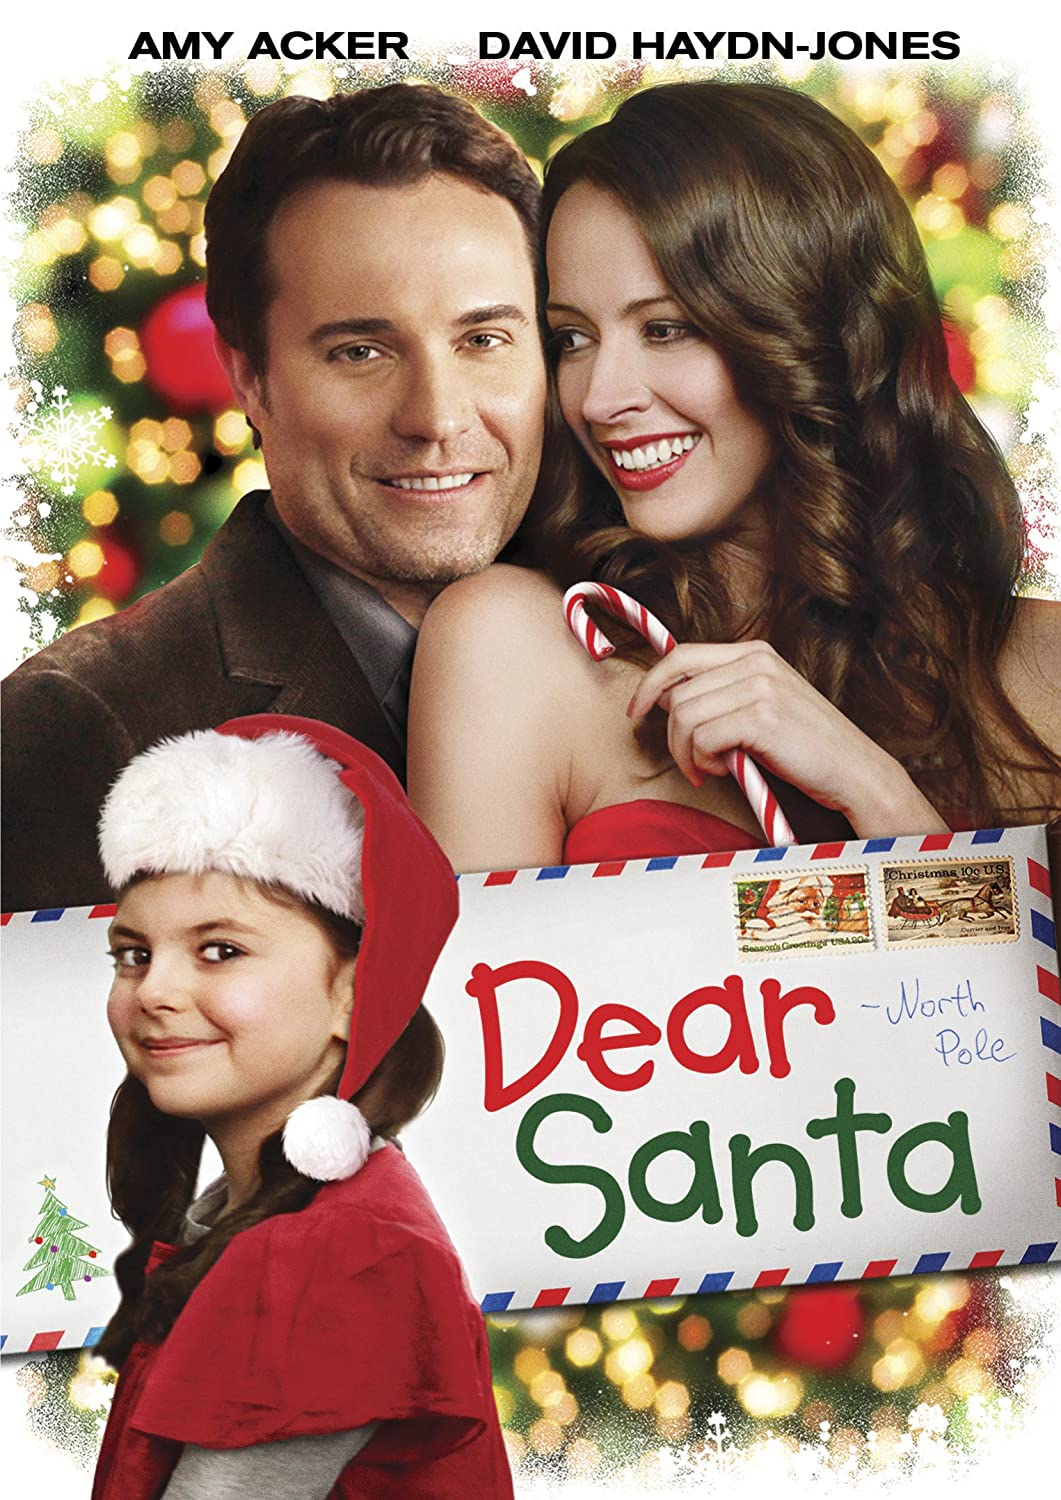 Amazon.com: Dear Santa: Amy Acker, Gina Holden, Brooklynn Proulx ...